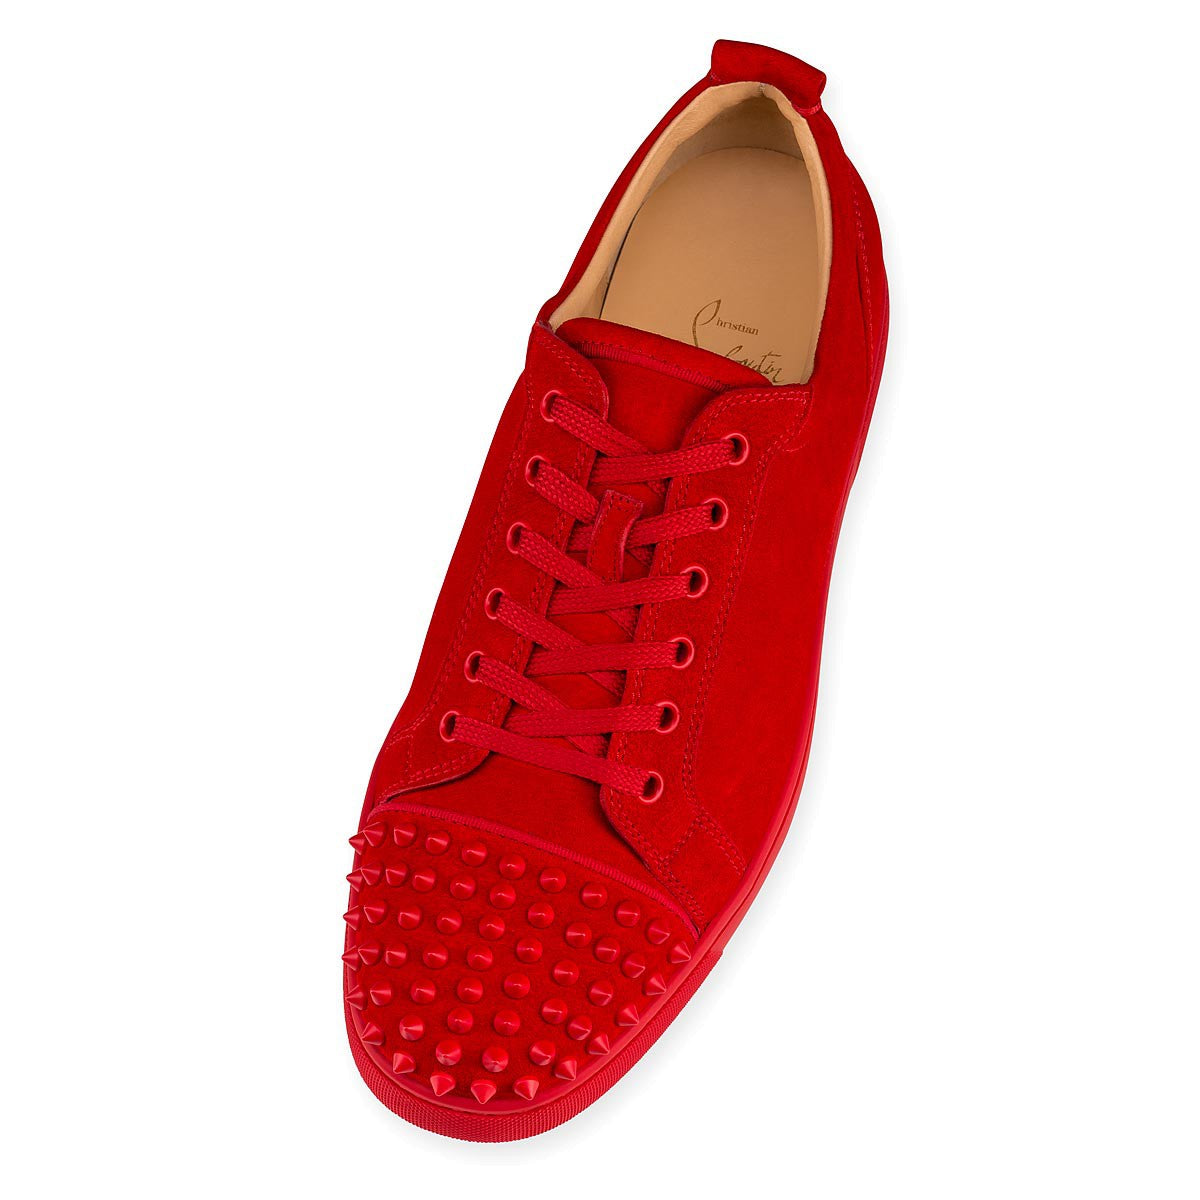 dbe4141f3ca3 Red Suede Low Top Louboutin Sneakers – Antigua fashion